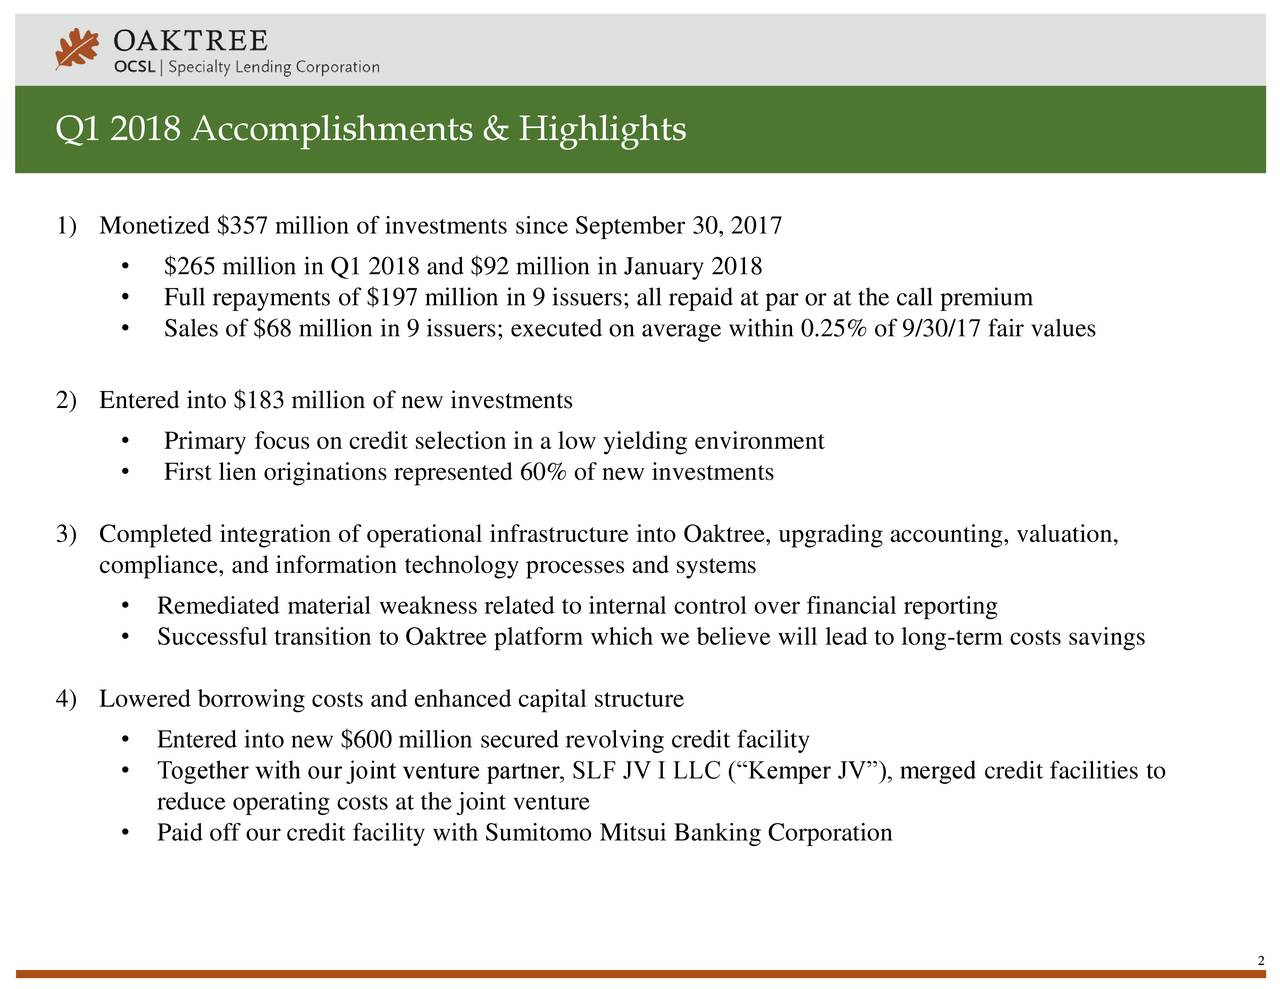 """1) Monetized $357 million of investments since September 30, 2017 • $265 million in Q1 2018 and $92 million in January 2018 • Full repayments of $197 million in 9 issuers; all repaid at par or at the call premium • Sales of $68 million in 9 issuers; executed on average within 0.25% of 9/30/17 fair values 2) Entered into $183 million of new investments • Primary focus on credit selection in a low yielding environment • First lien originations represented 60% of new investments 3) Completed integration of operational infrastructure into Oaktree, upgrading accounting, valuation, compliance, and information technology processes and systems • Remediated material weakness related to internal control over financial reporting • Successful transition to Oaktree platform which we believe will lead to long-term costs savings 4) Lowered borrowing costs and enhanced capital structure • Entered into new $600 million secured revolving credit facility • Together with our joint venture partner, SLF JV I LLC (""""Kemper JV""""), merged credit facilities to reduce operating costs at the joint venture • Paid off our credit facility with Sumitomo Mitsui Banking Corporation 2"""